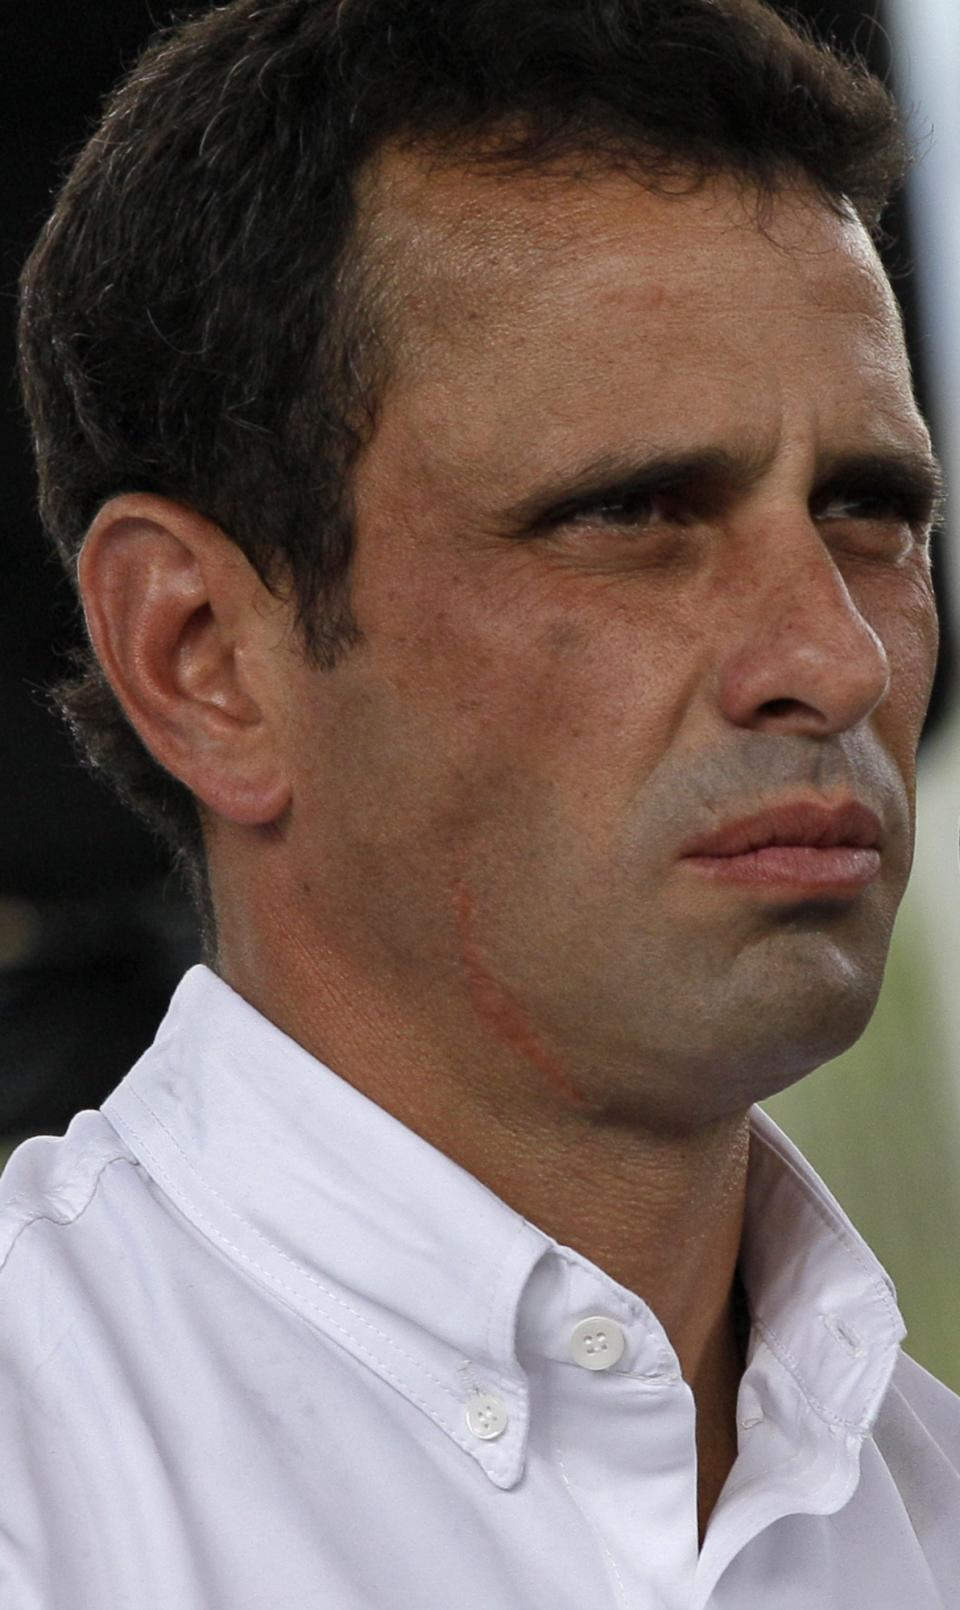 Opposition presidential candidate Henrique Capriles talks to reporters after voting at a polling station in Caracas, Venezuela, Sunday, Oct. 7, 2012. Venezuela's electoral council says President Hugo Chavez has won re-election, defeating challenger Capriles.(AP Photo/Ariana Cubillos)